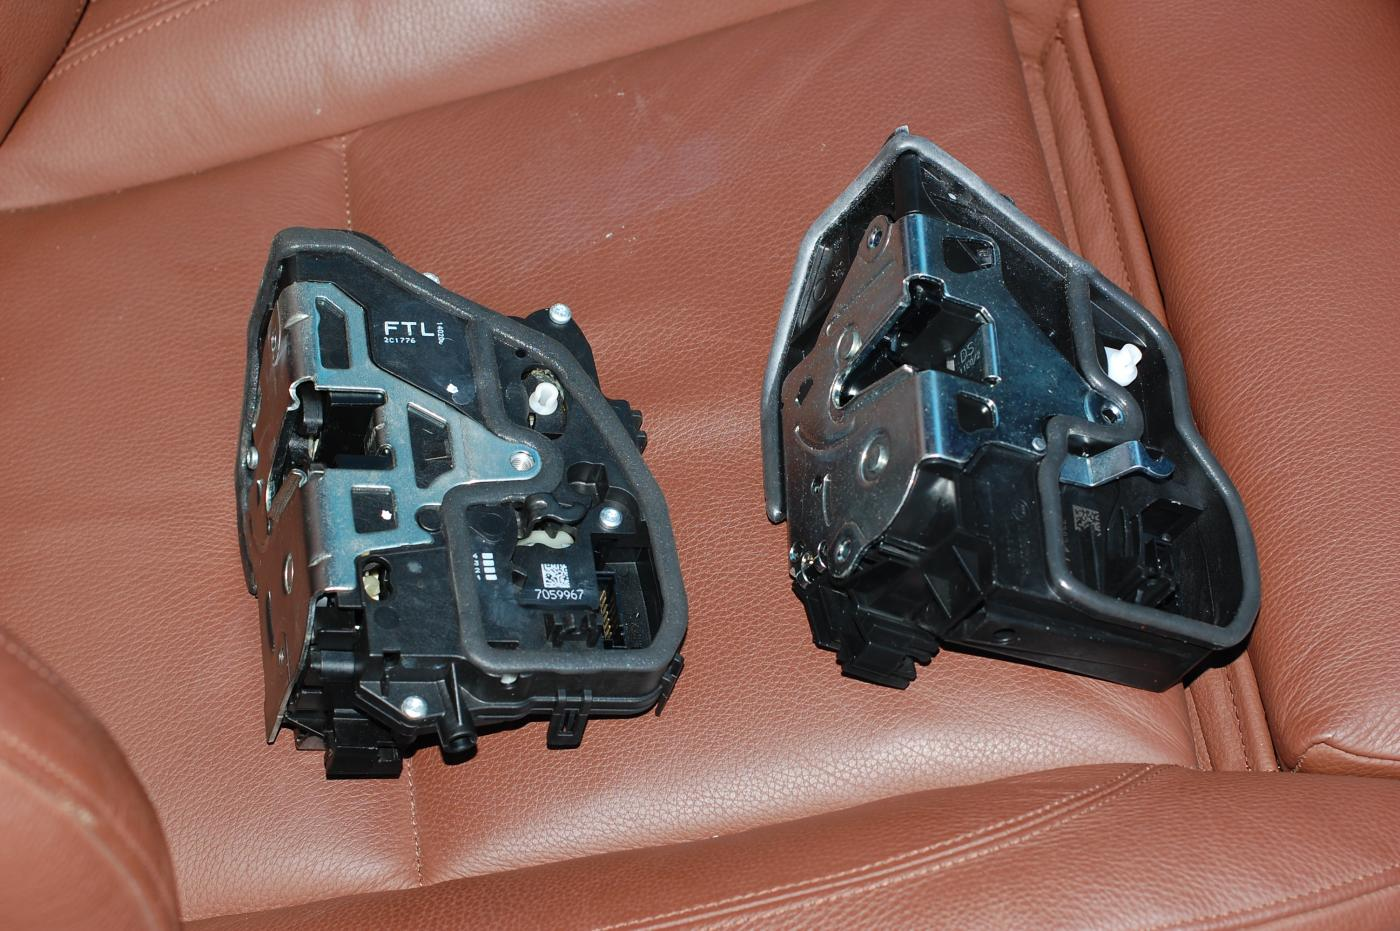 Diy Front Door Lock Actuator Replacement E90 Bmw Wiring Diagram Just To Make Sure I Checked That The Was Fixed Before Placed Panel And Vapor Barrier Back On